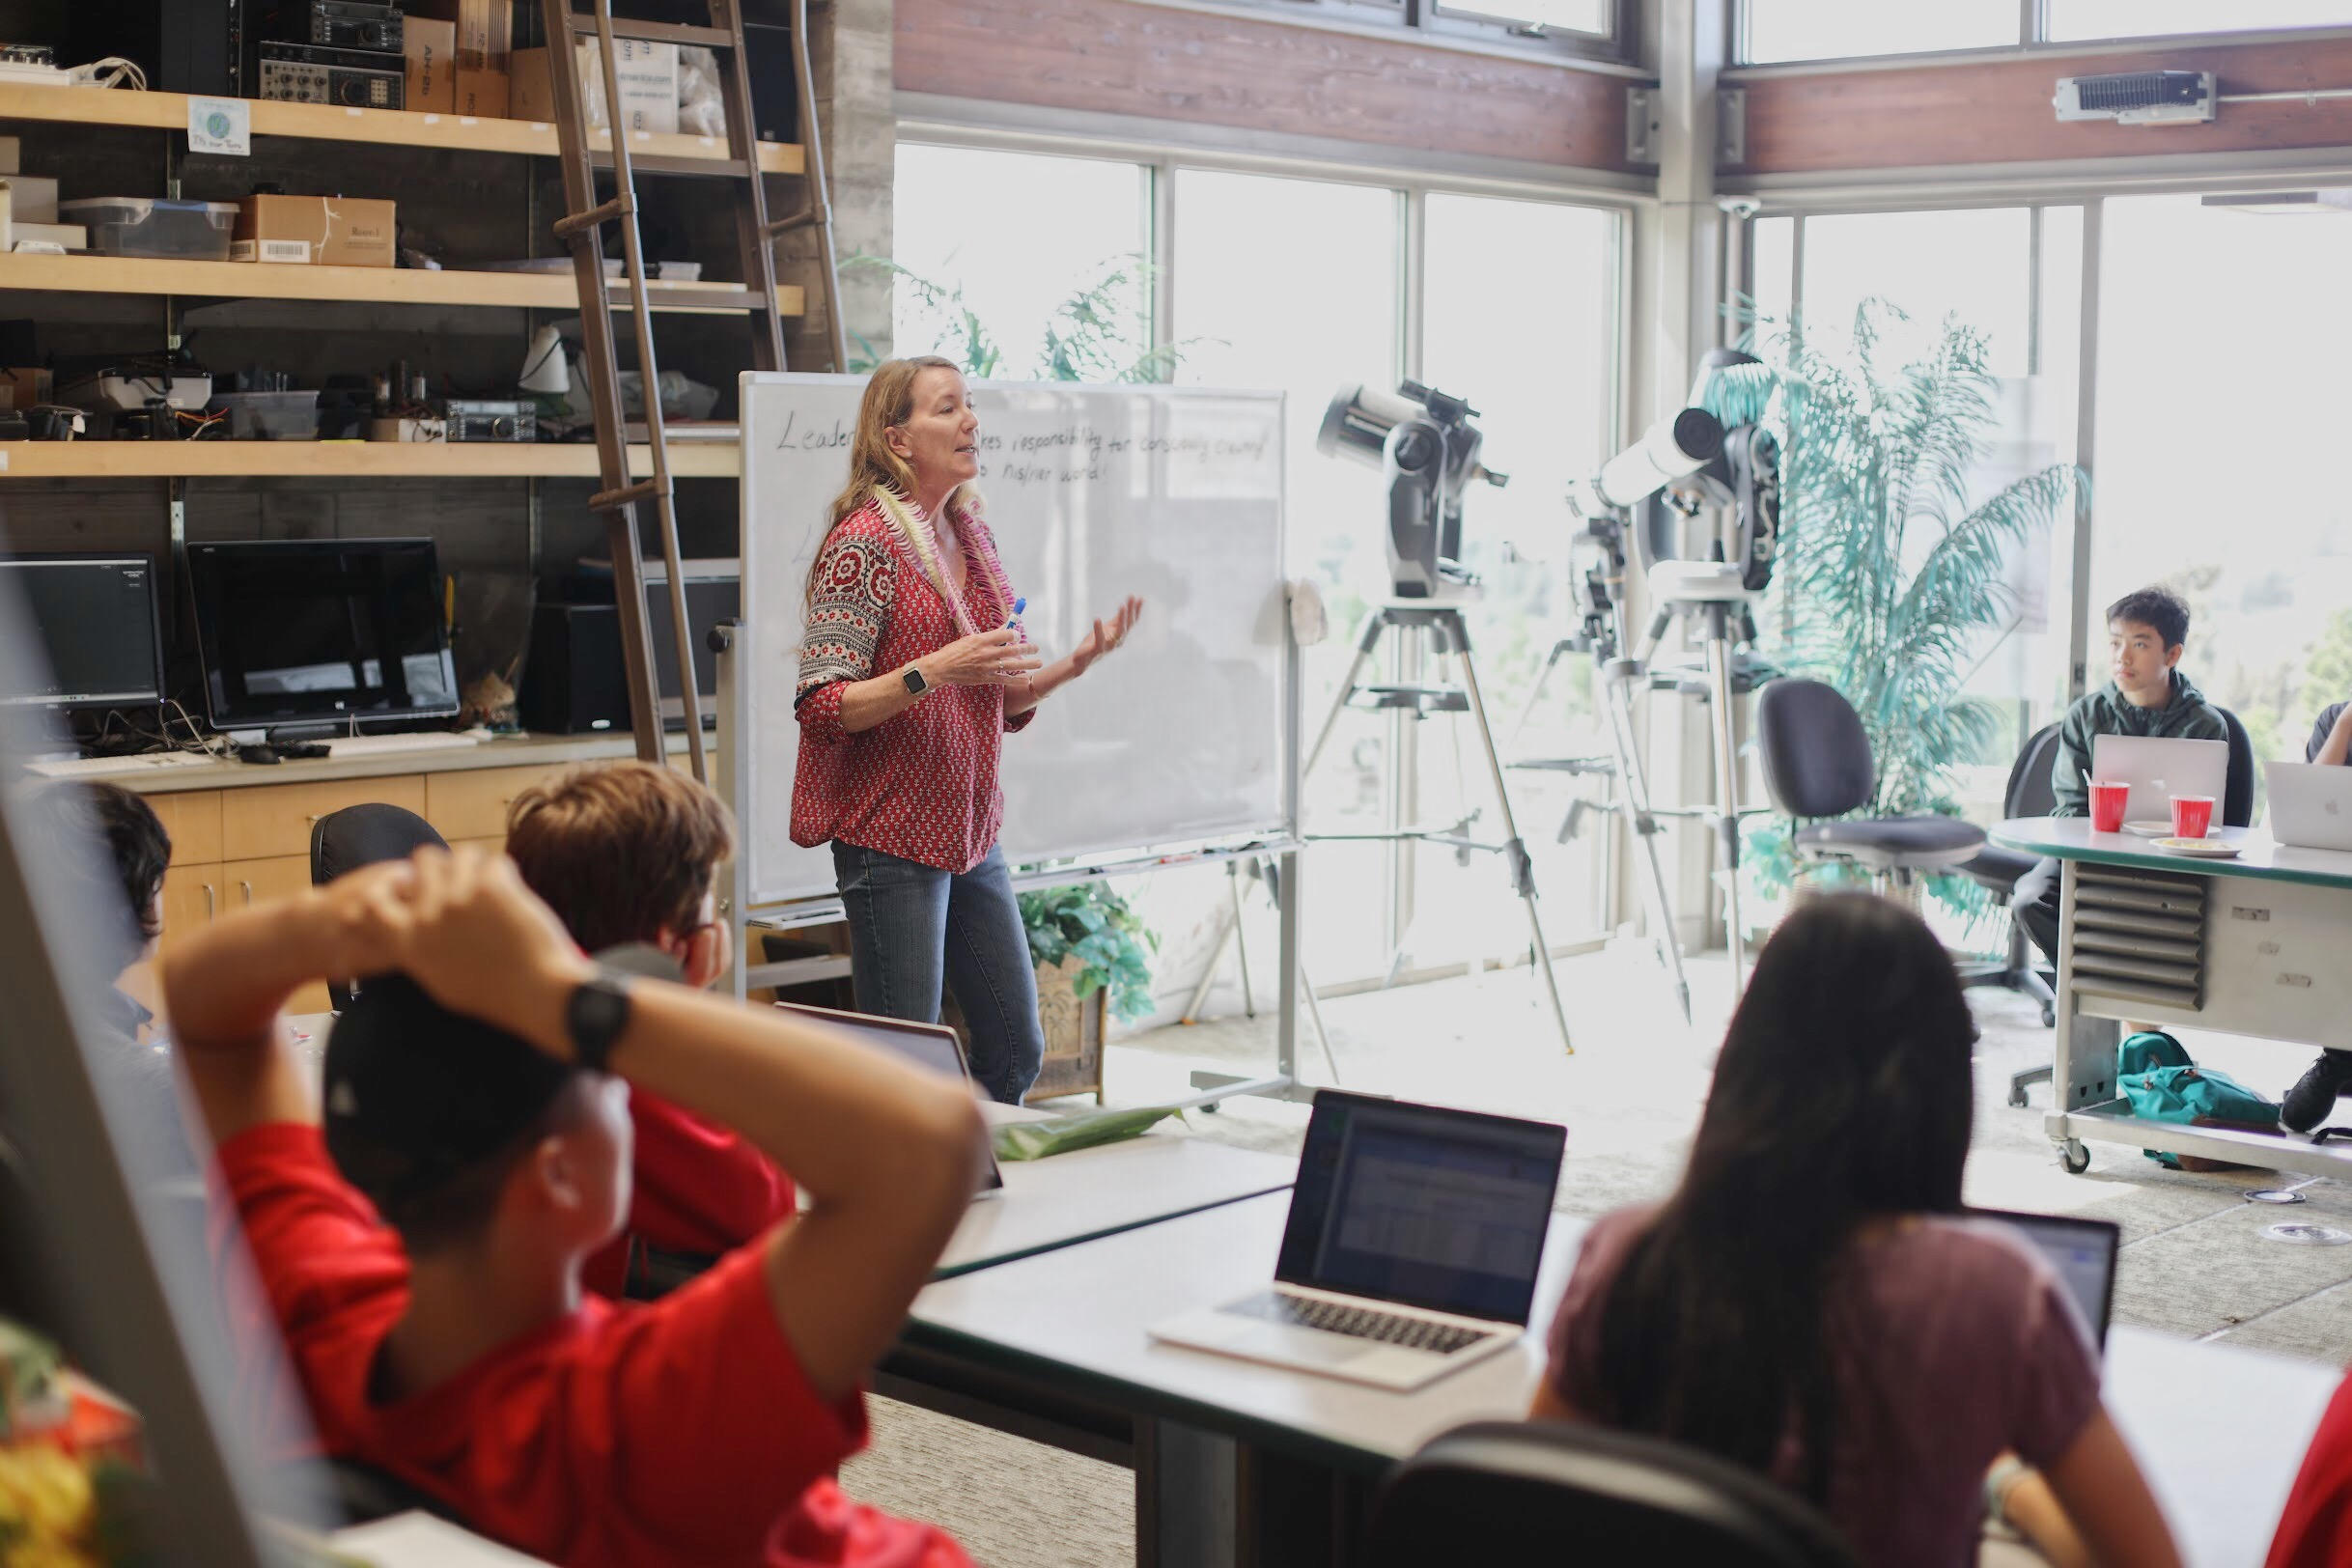 Sydney Wiecking shares her leadership insight with Nalukai 2018 students. Photo by Gabriel Navalta.